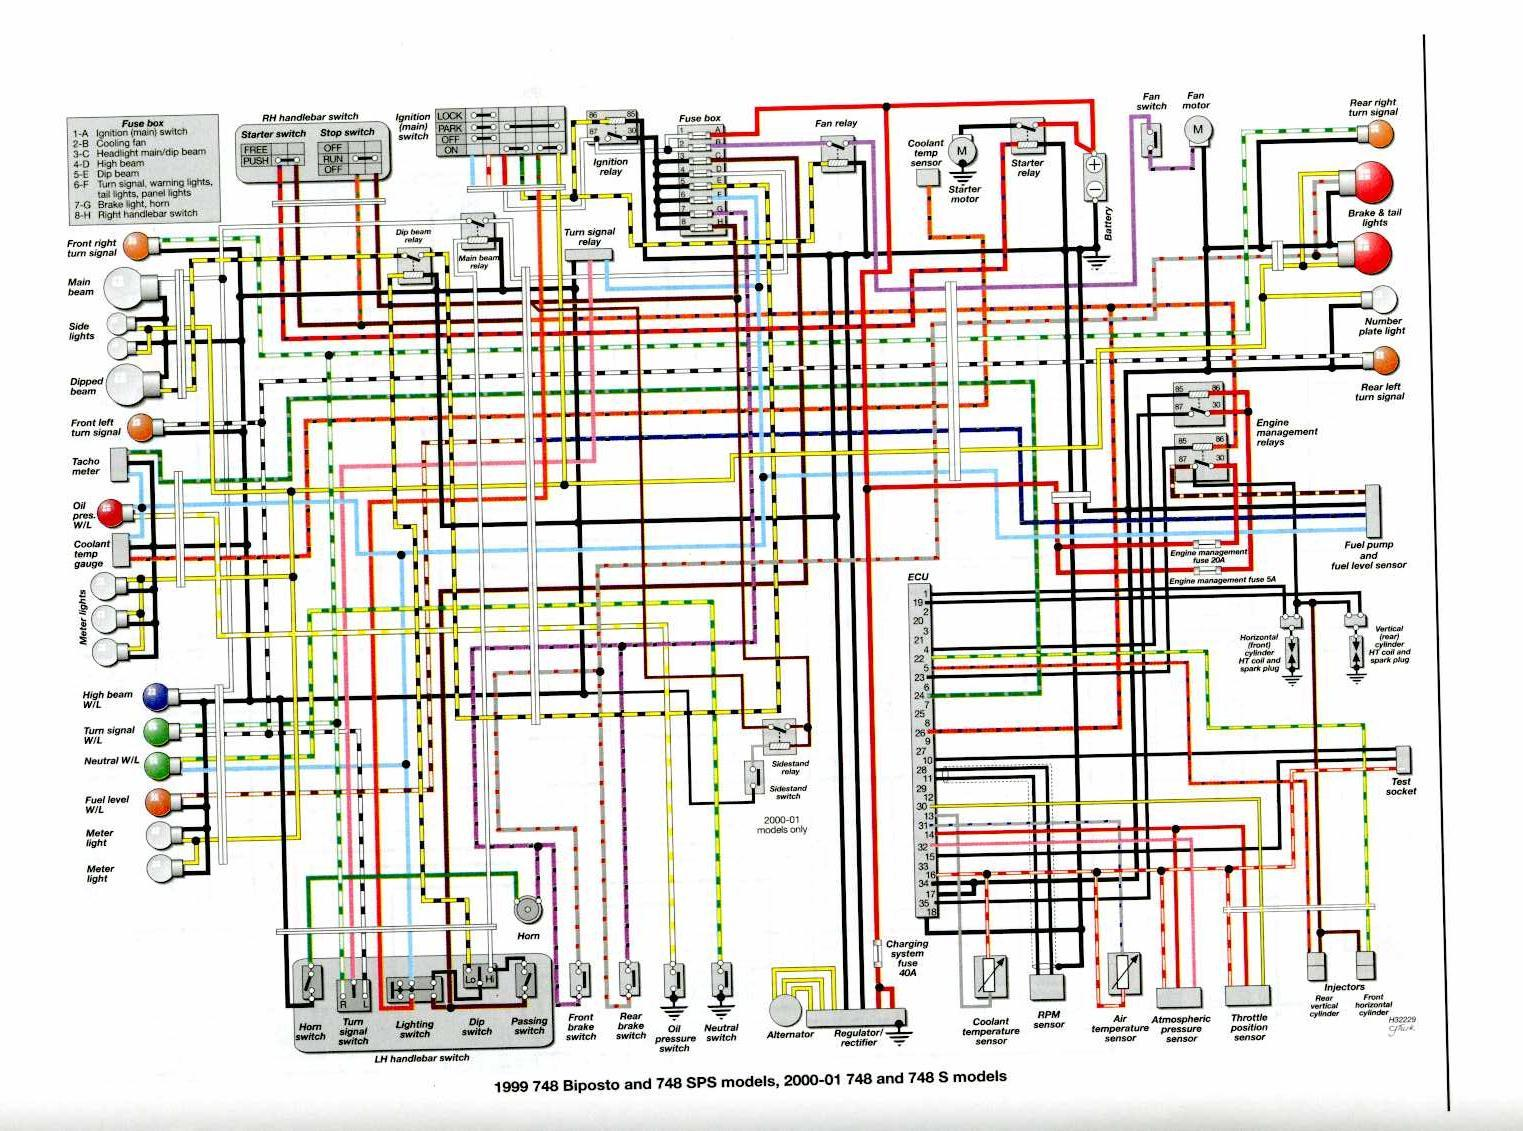 727138d1467671052 748 916 rpm cable 748 wiring 748 916 rpm cable ducati ms the ultimate ducati forum translogic dash wiring diagram at creativeand.co